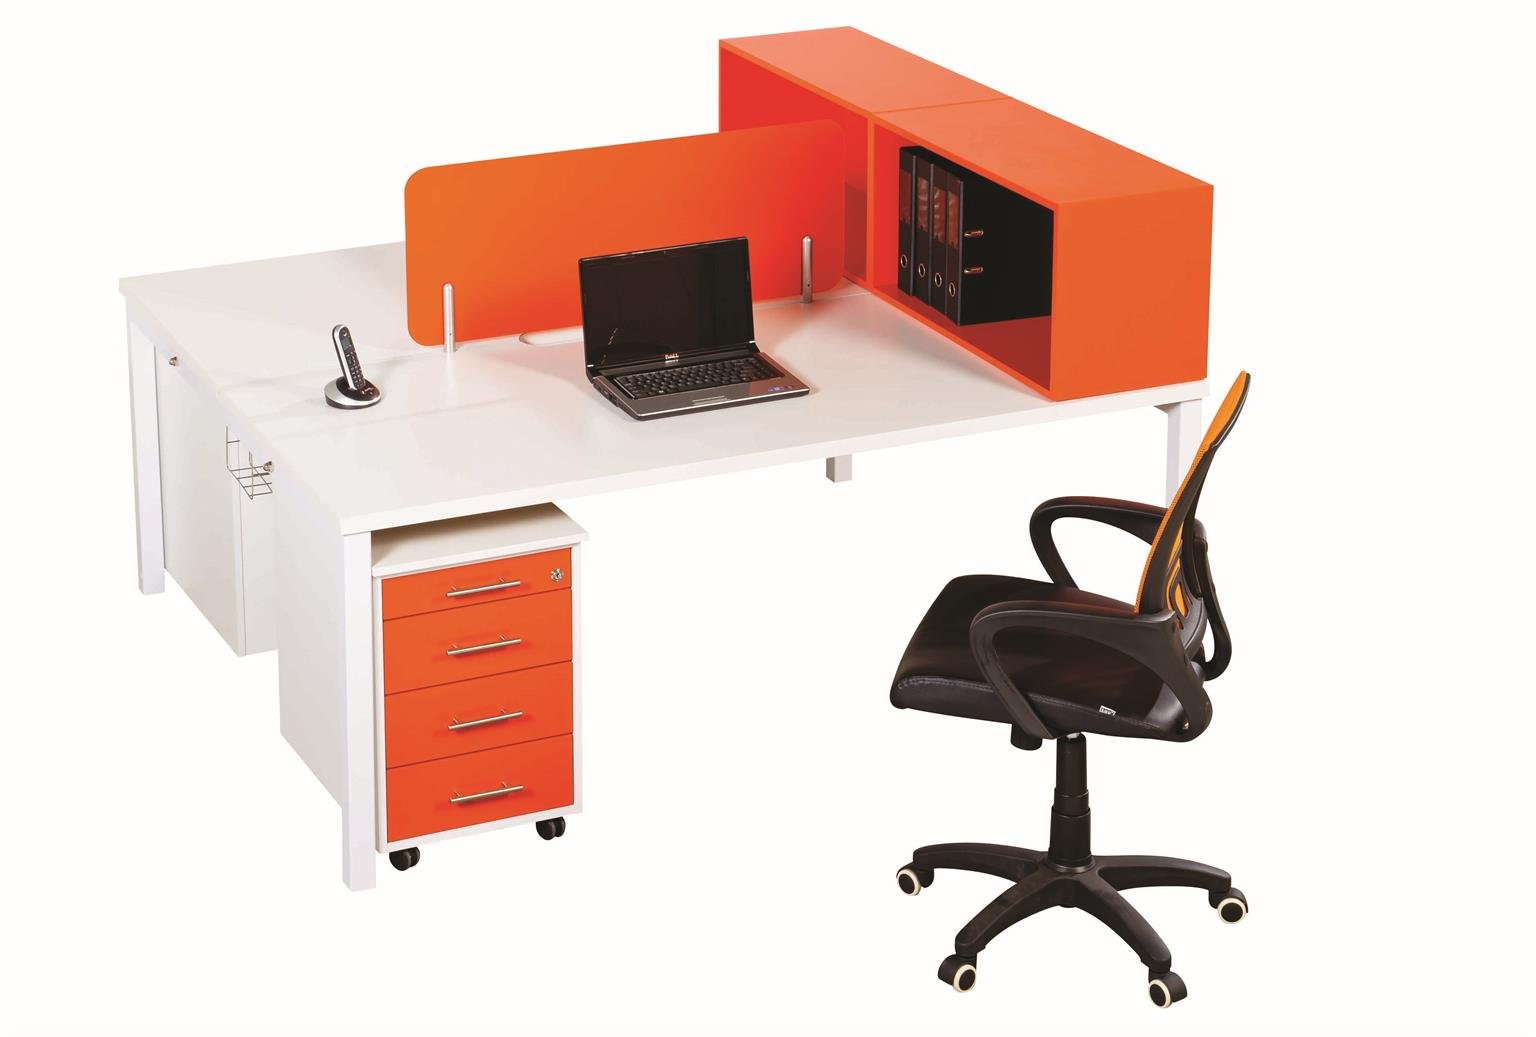 Call Centre Cluster Desks - Filing Cabinets